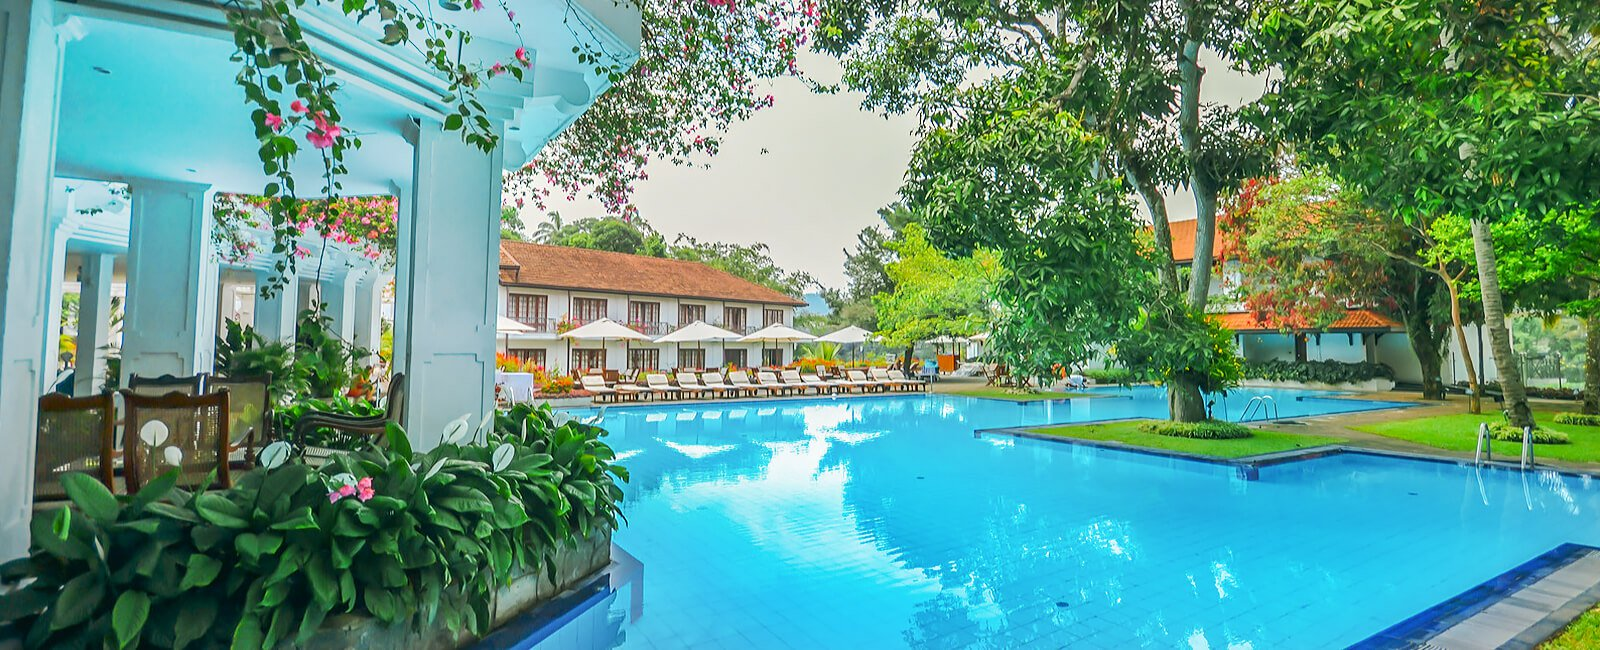 Pool and Outdoors of Mahaweli Reach Hotel